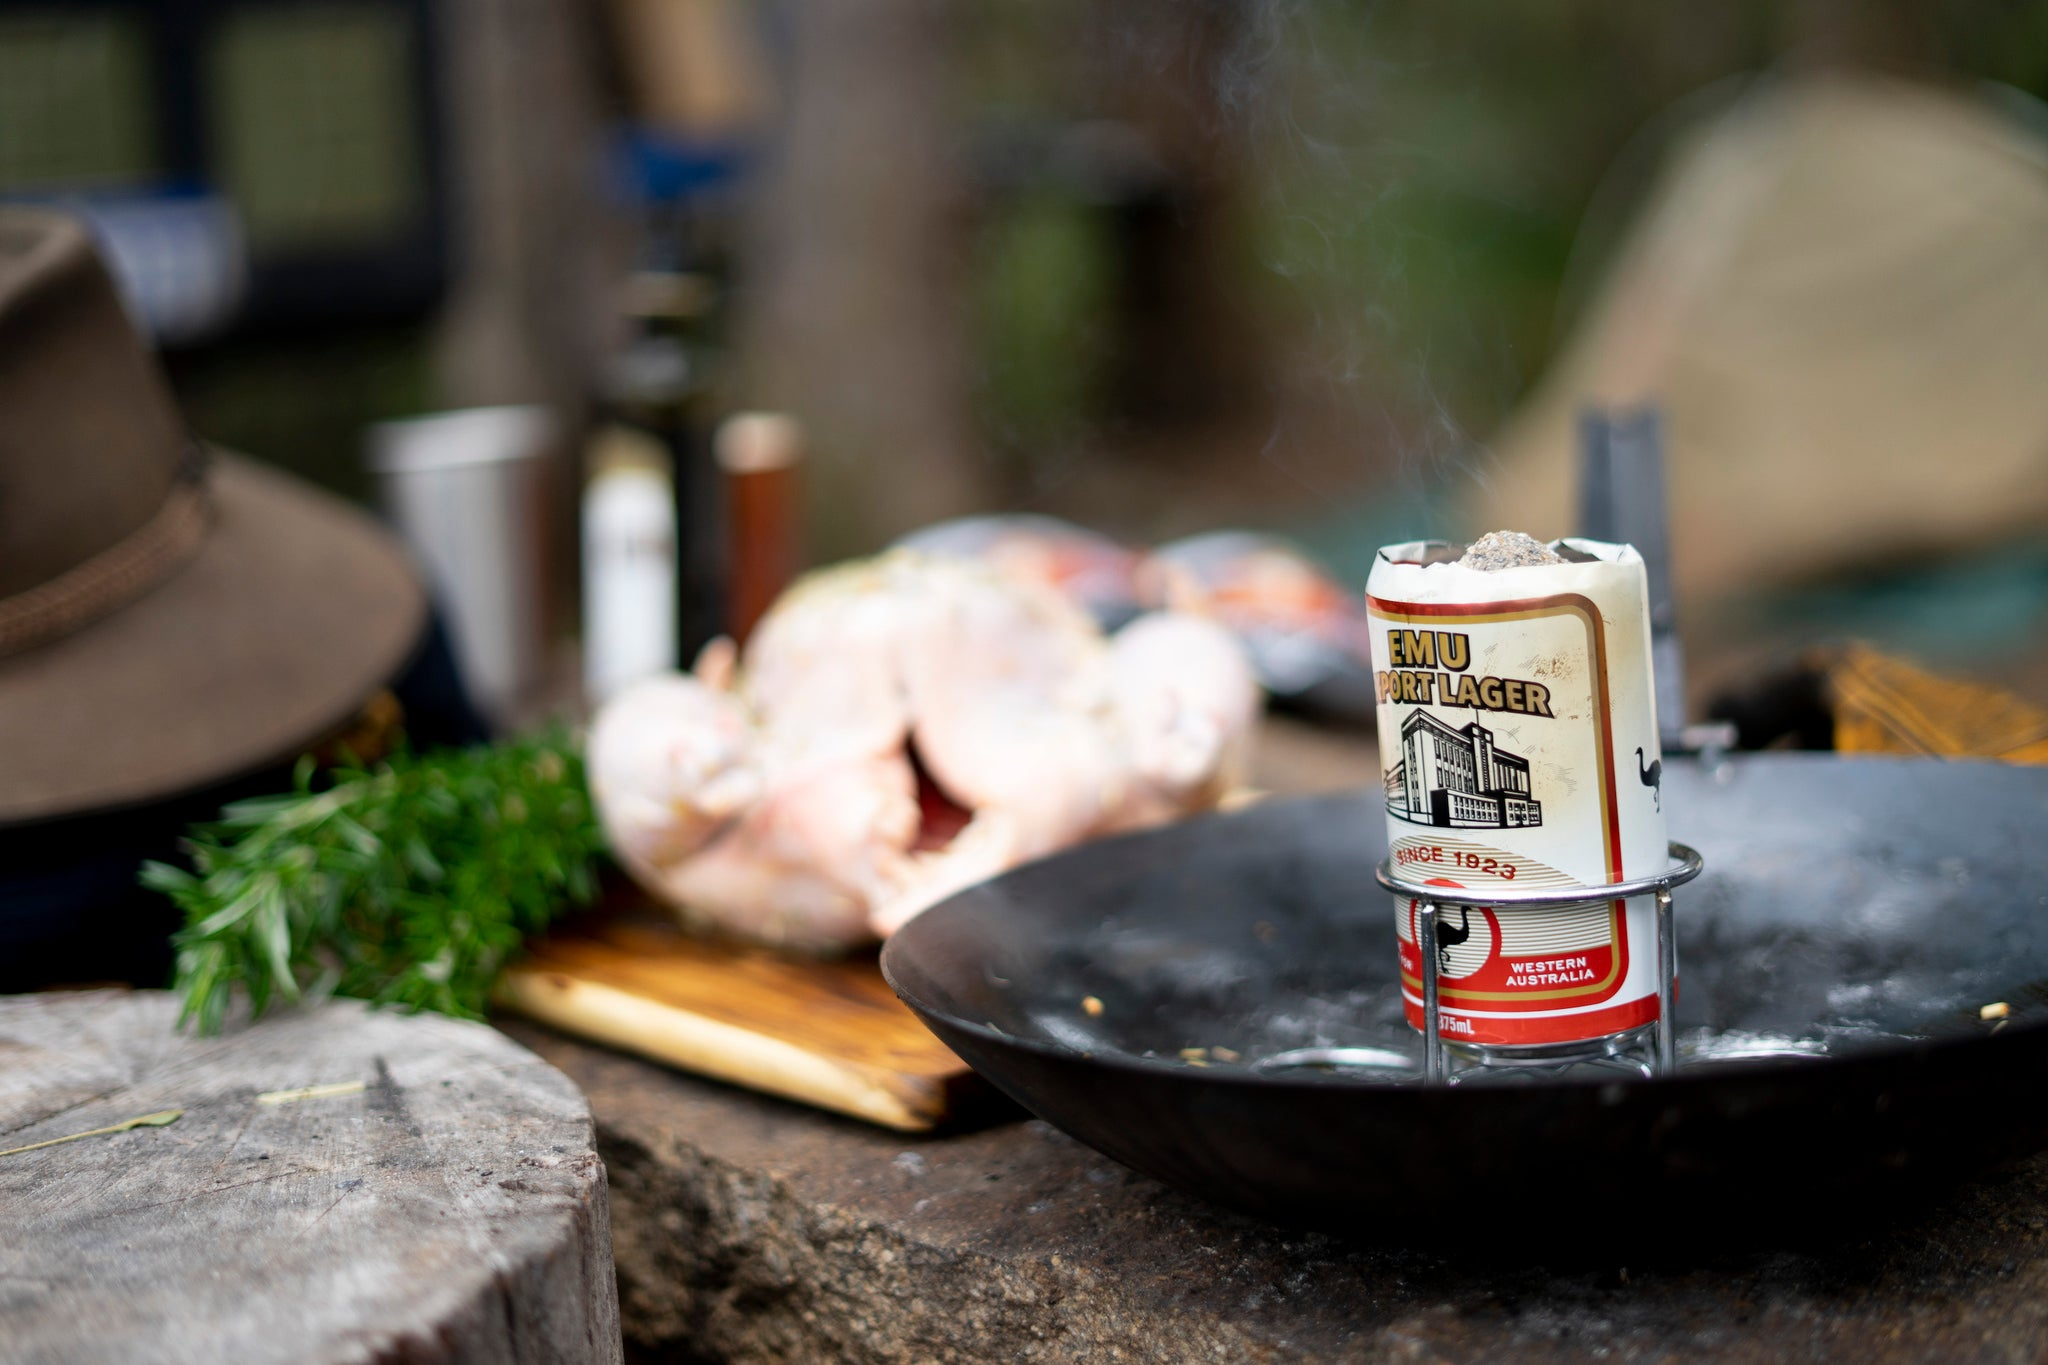 beer can chicken is easier than you think. you just need to start with really hot beer. the steam from the beer is what seals the chickens cavity and locks in the yummy juices.